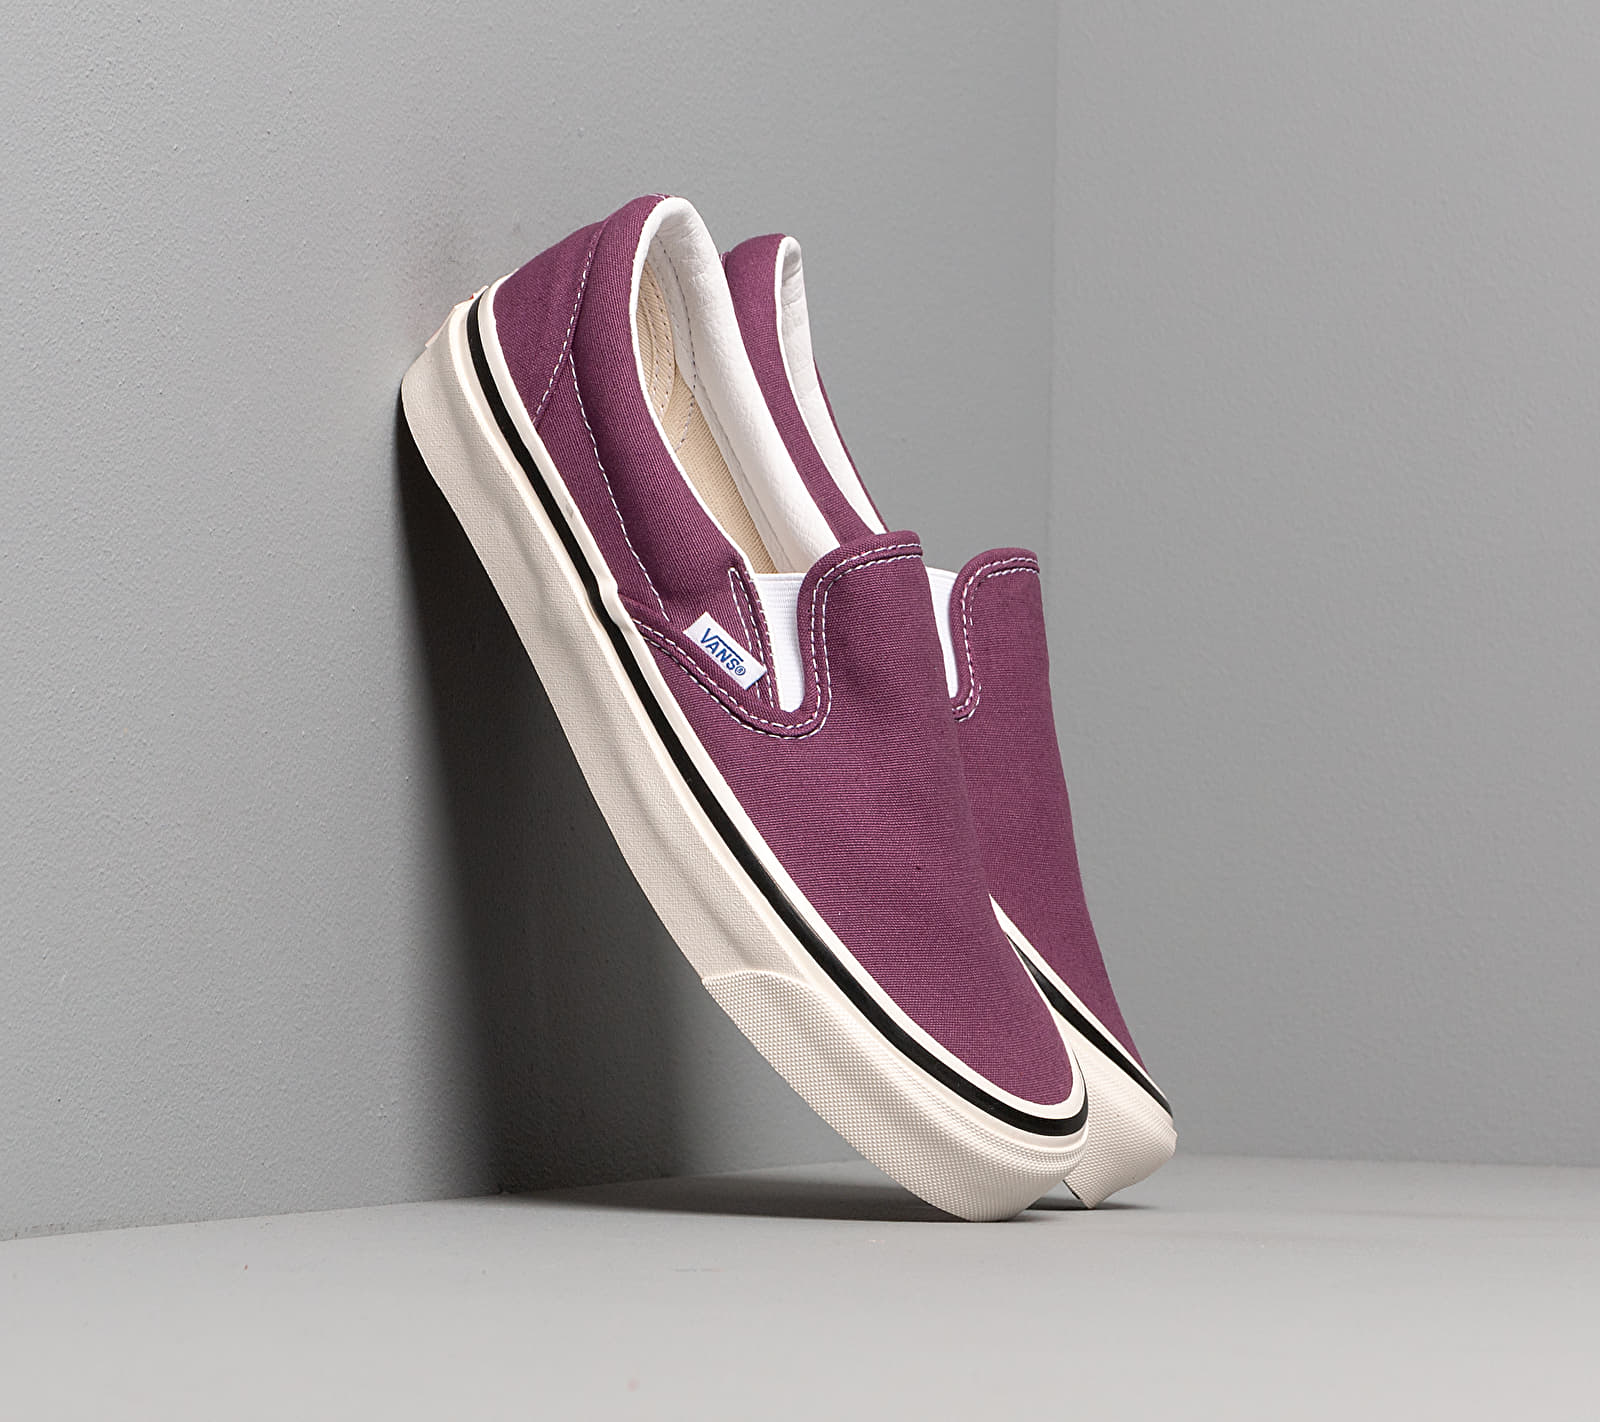 Vans Classic Slip-On 9 OG Grape EUR 36.5